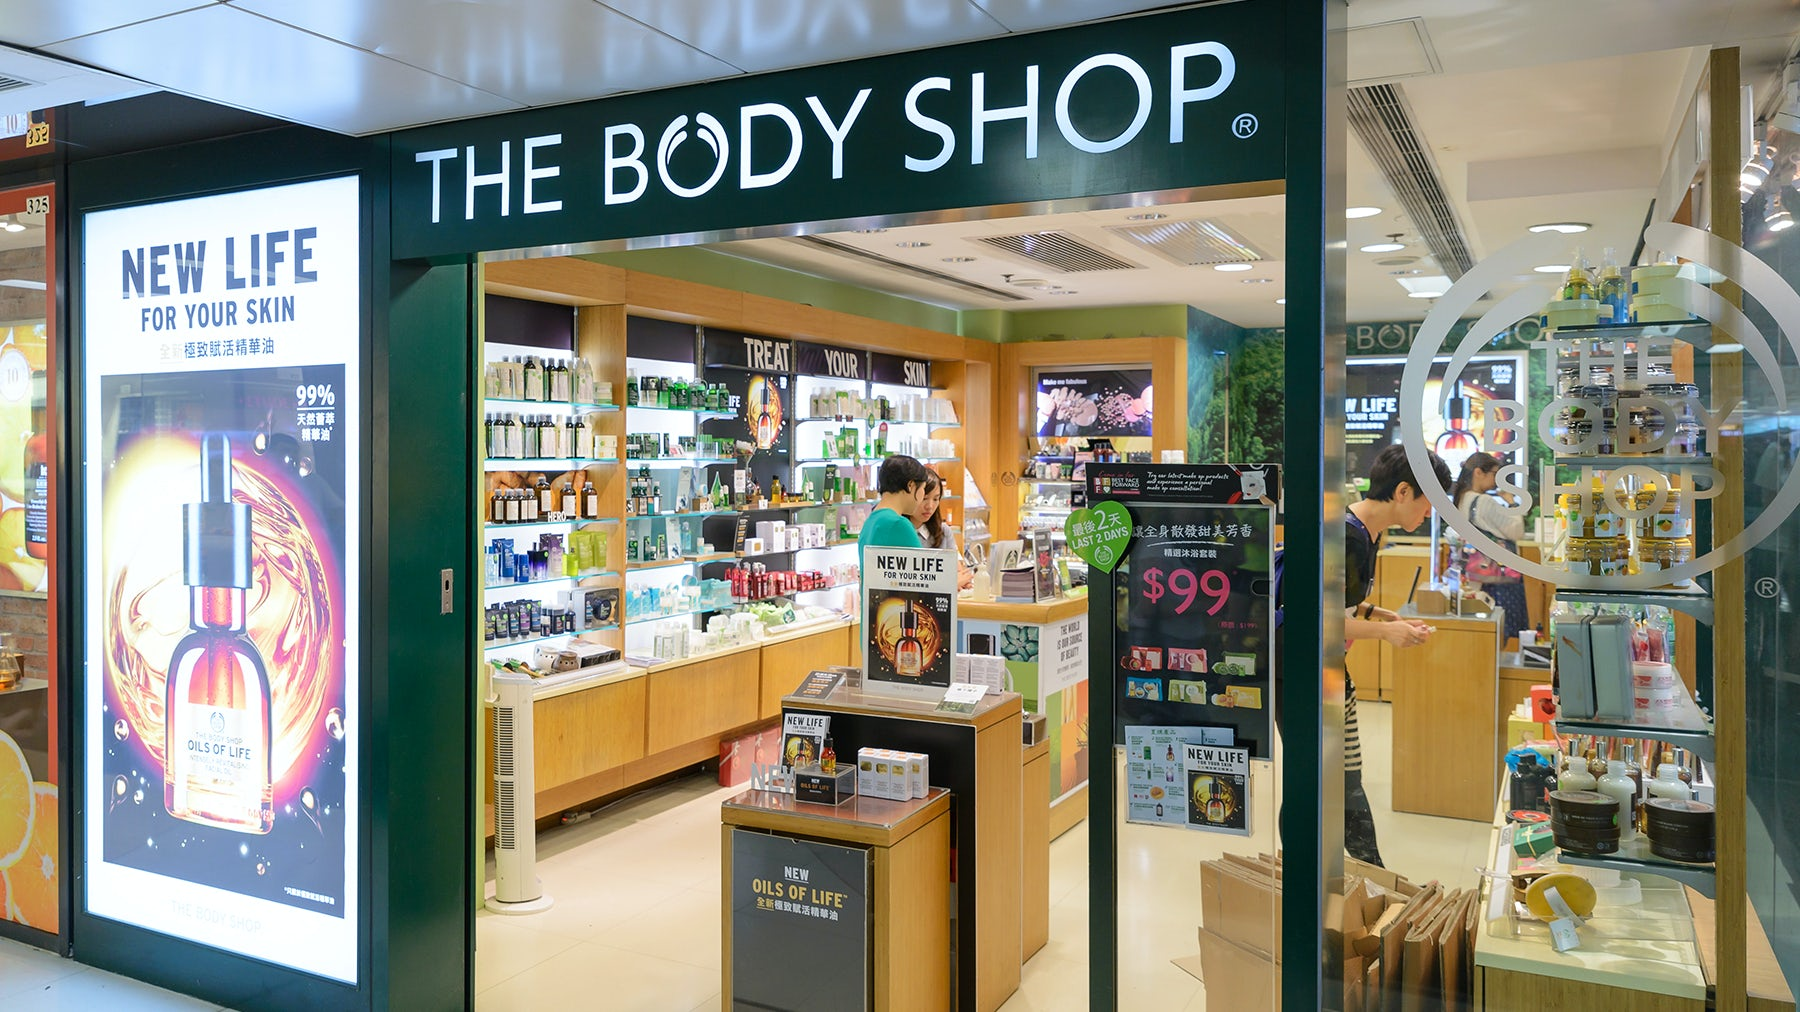 l'oreal takes over the body shop